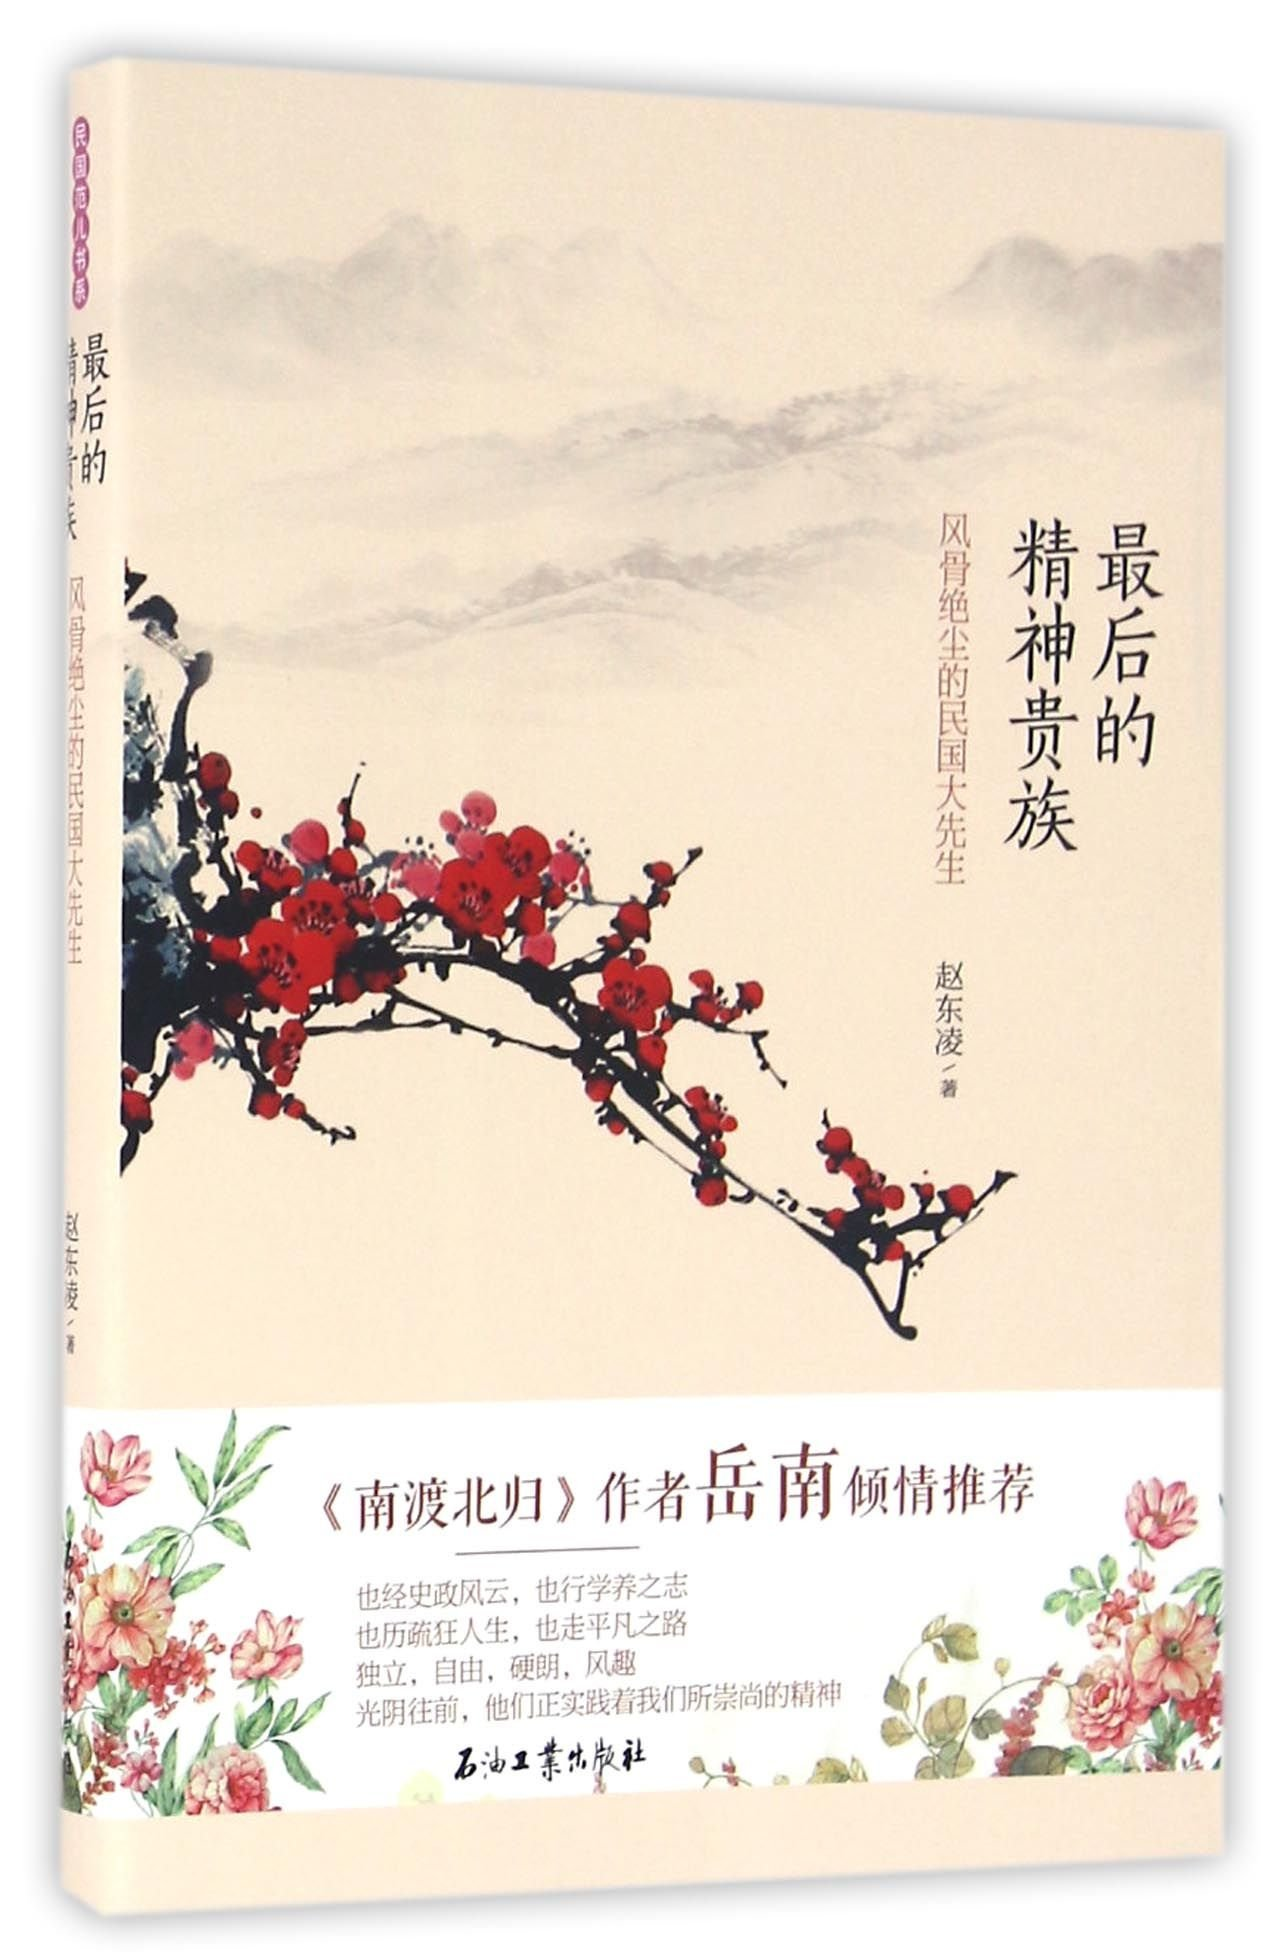 The Last Intellectual Aristocrats (Literati and Celebrities in the Republic of China) (Chinese Edition) ebook